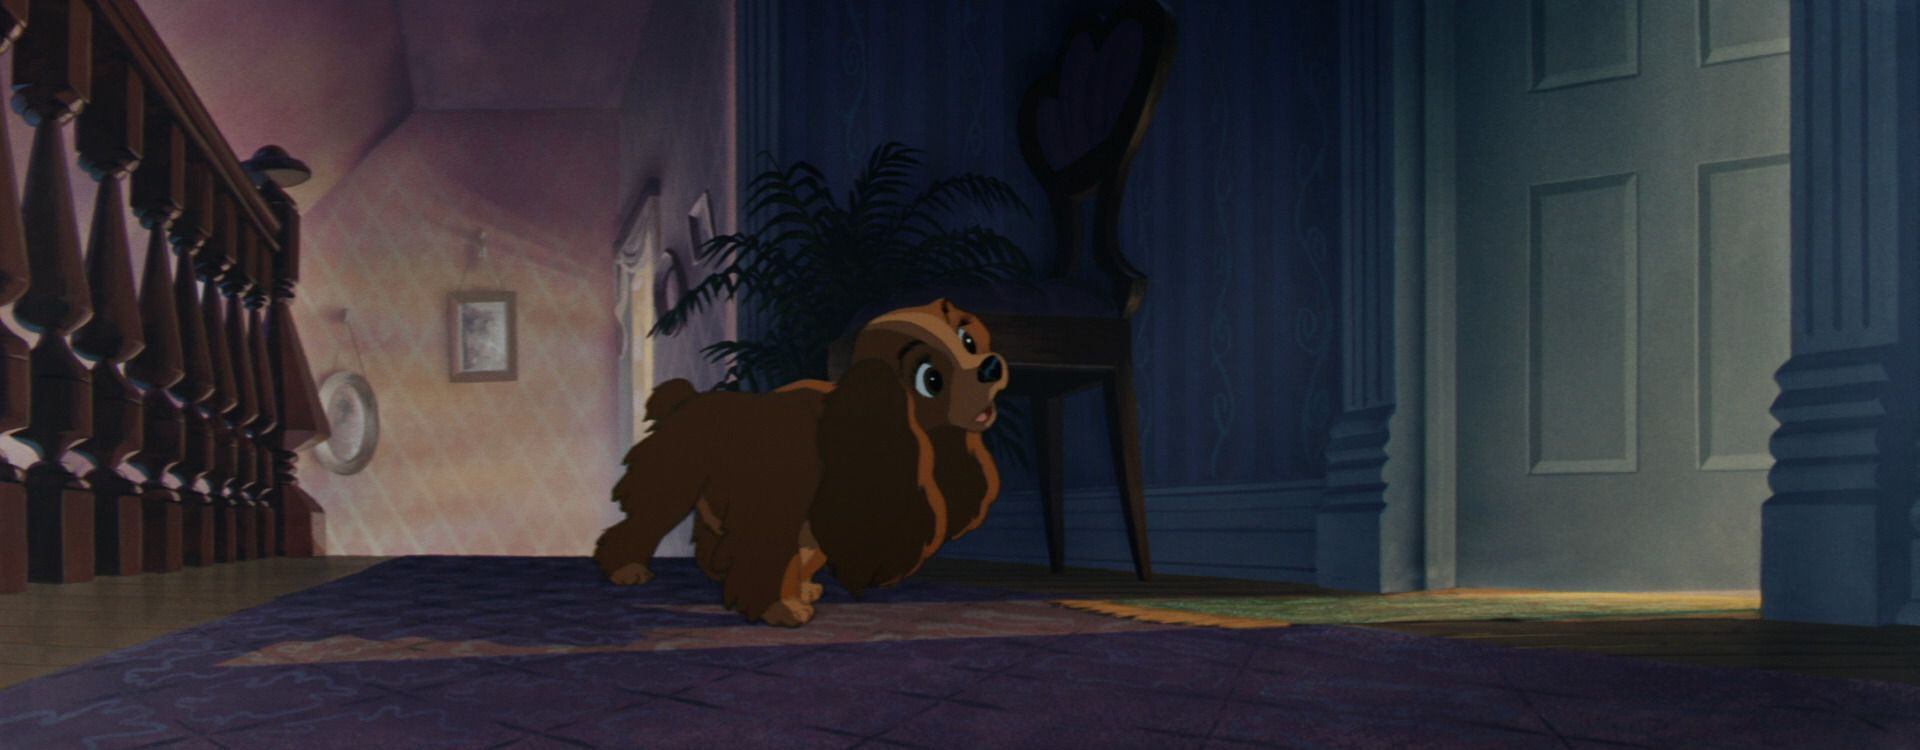 Lady And The Tramp 1955 Disney Screencaps Lady And The Tramp Old Disney Disney Ladies